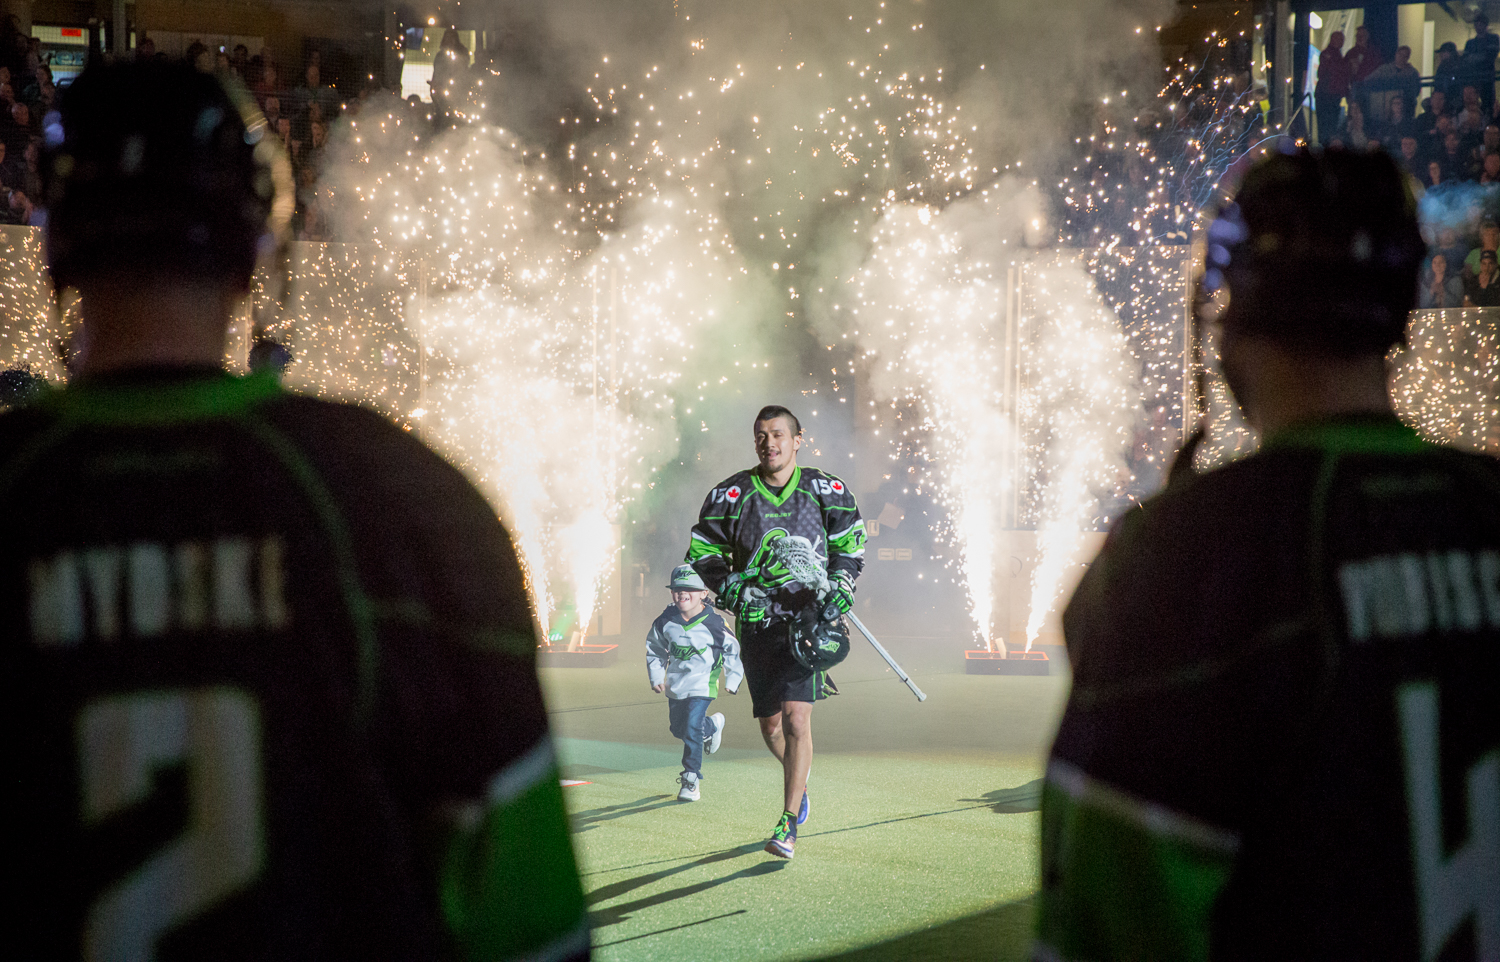 It was Canadian Pride Night as the Rush took to the field in their special edition Canada 150 jerseys with their sights set on clinching the 1st spot in the West.